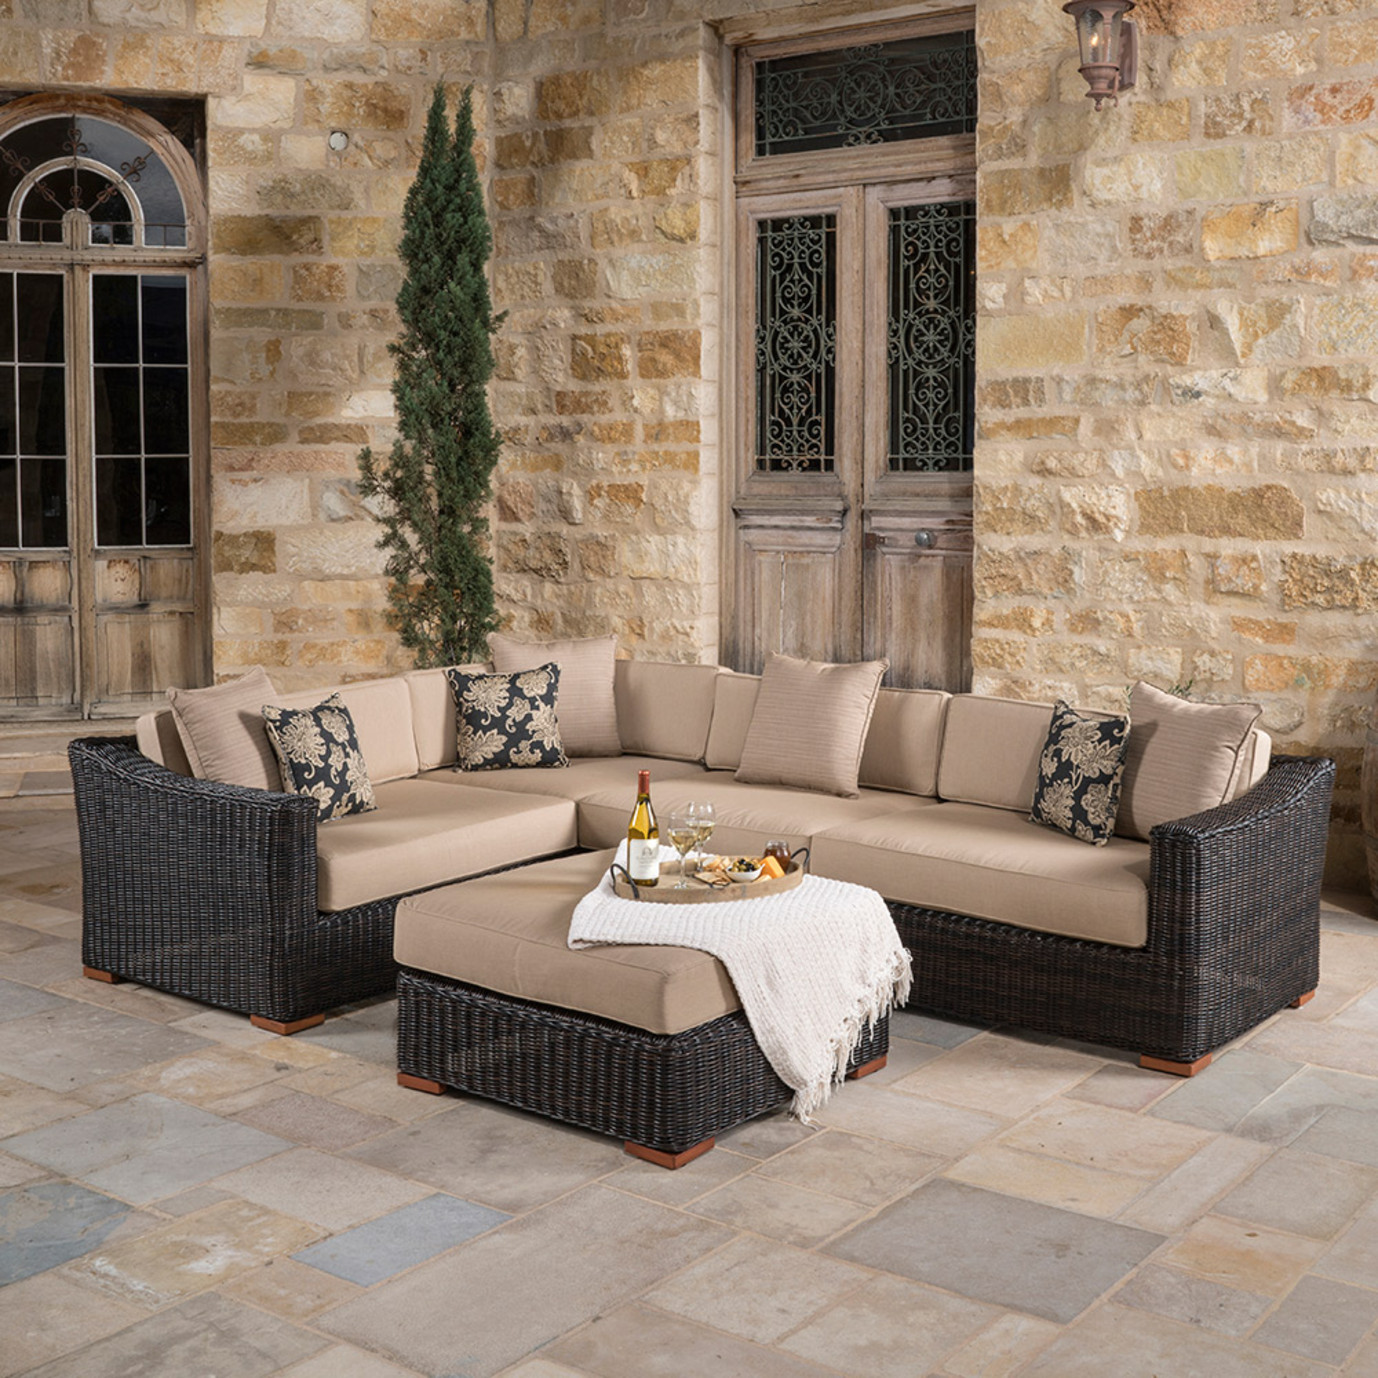 Resort™ 5pc Sectional & Ottoman Set - Espresso/Heather Beige